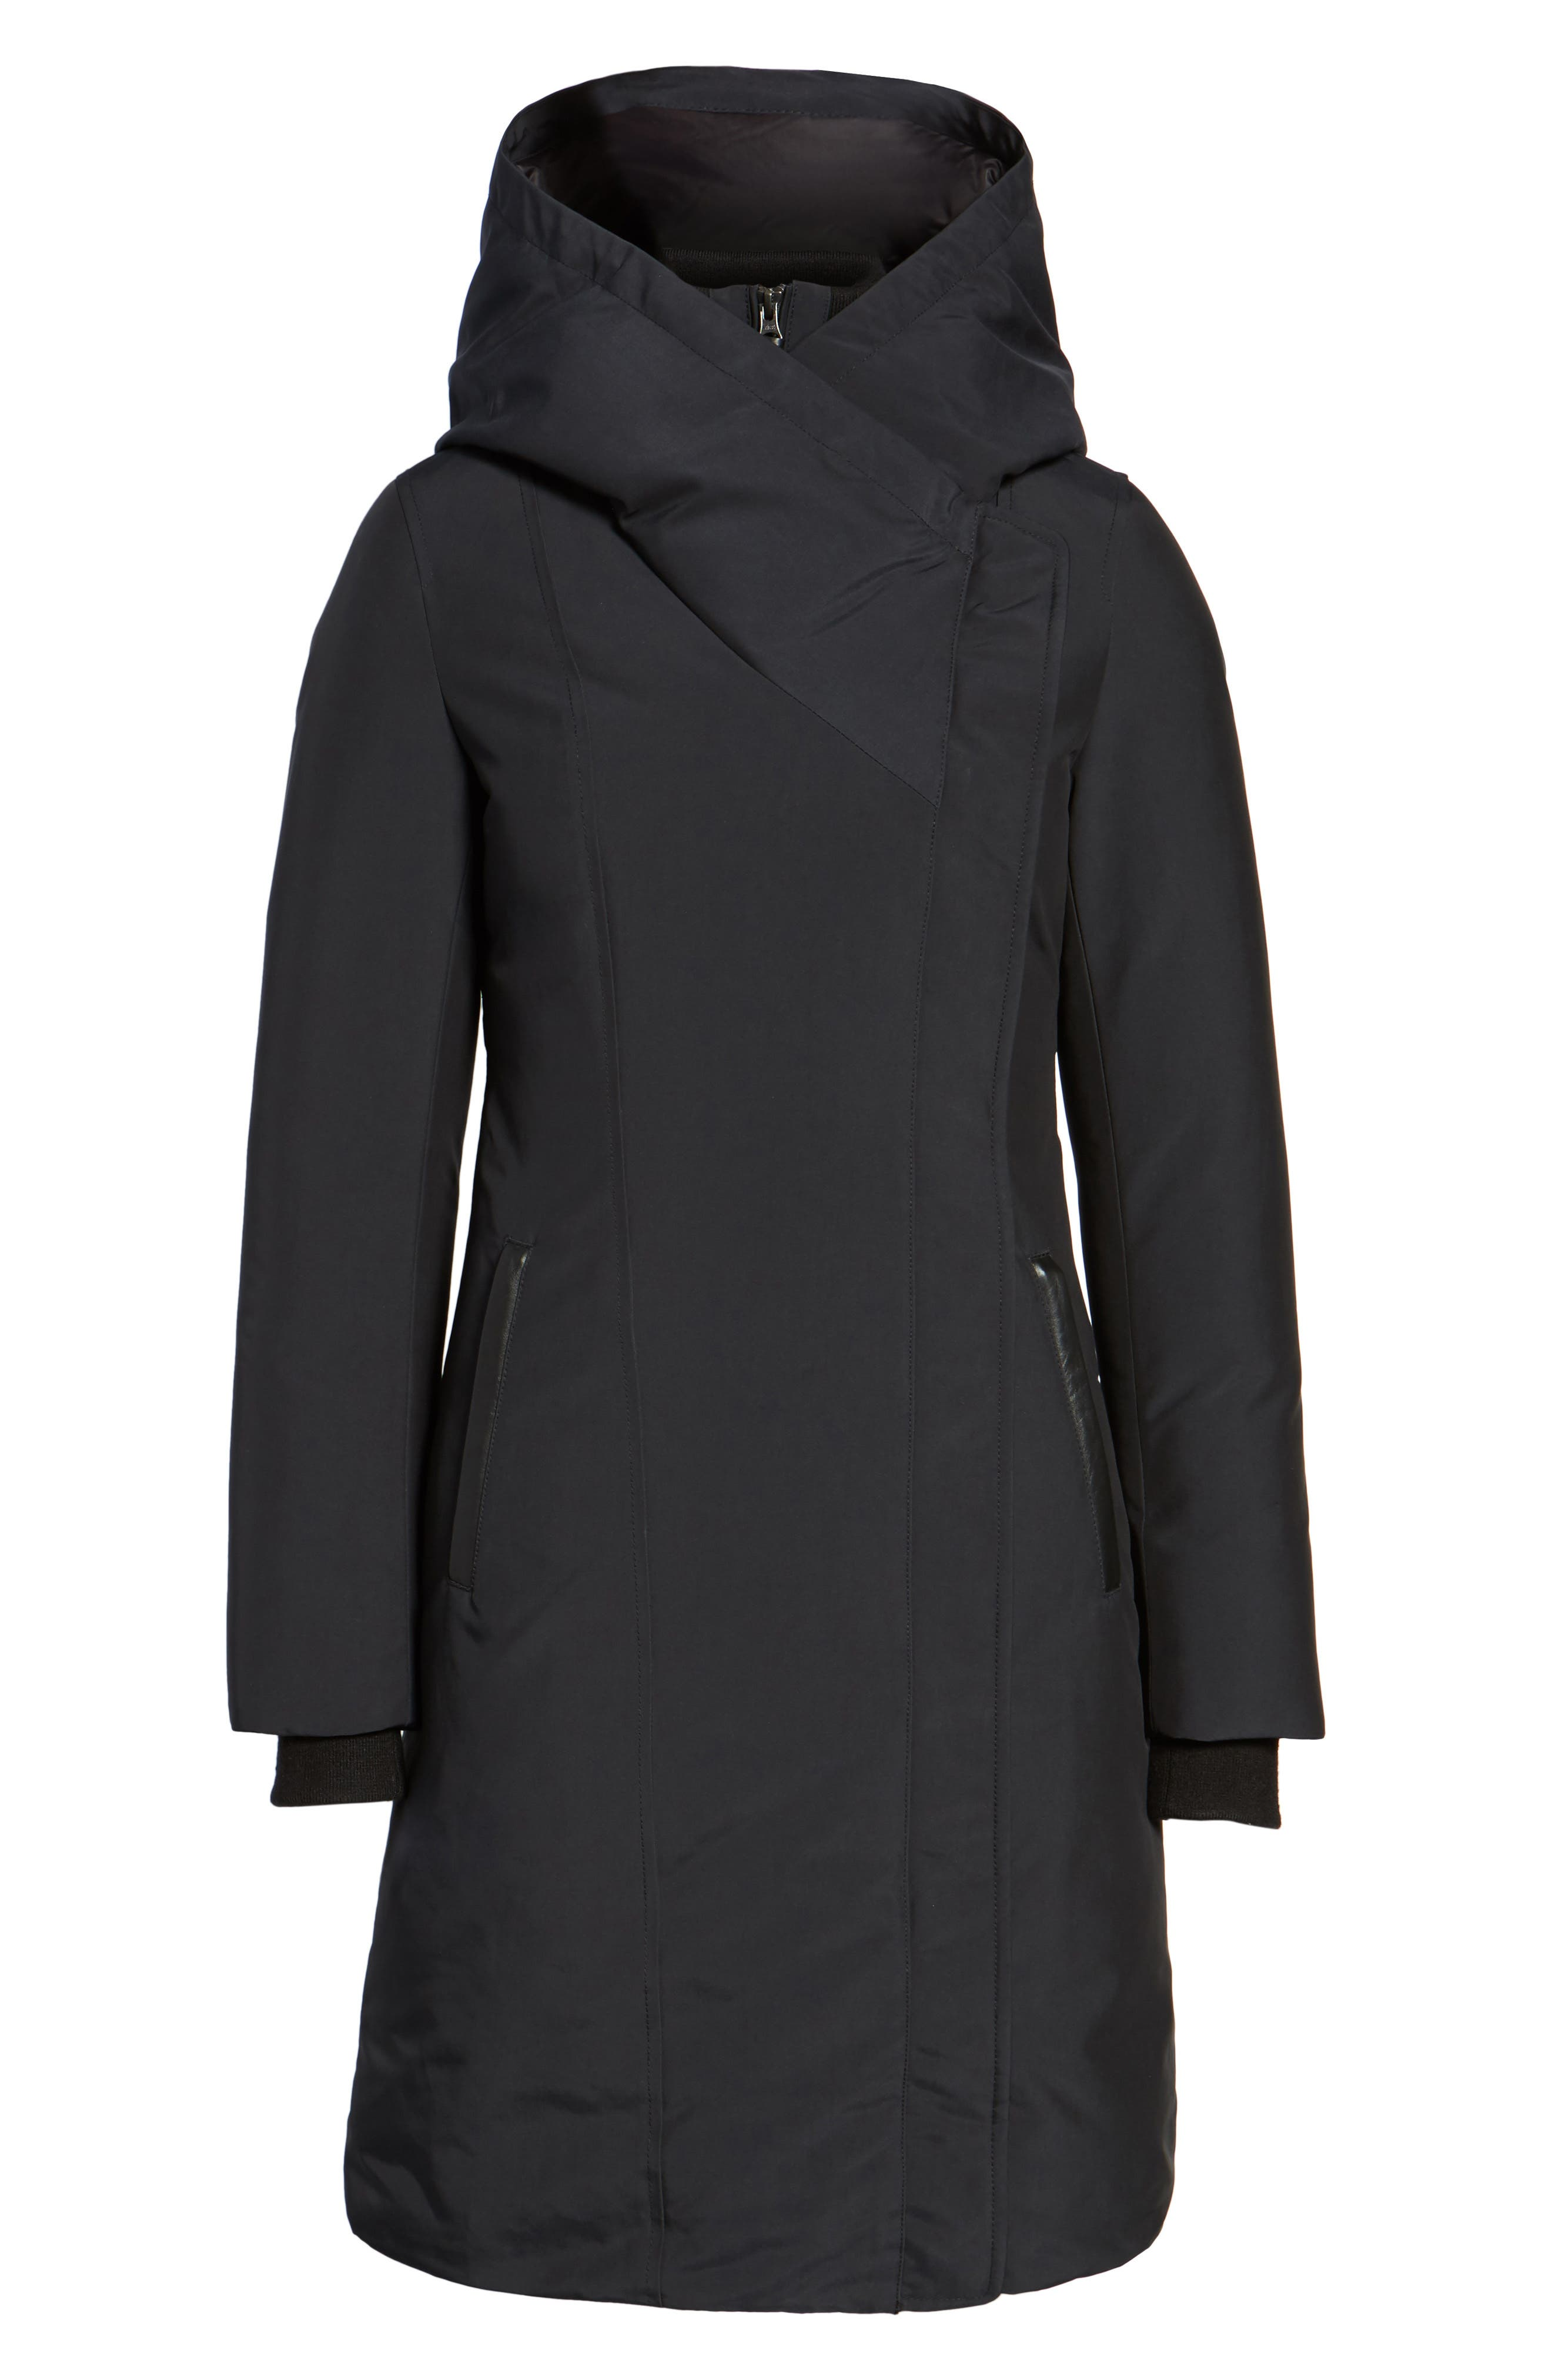 Hooded Asymmetrical Down Coat with Inset Bib,                             Alternate thumbnail 5, color,                             Black